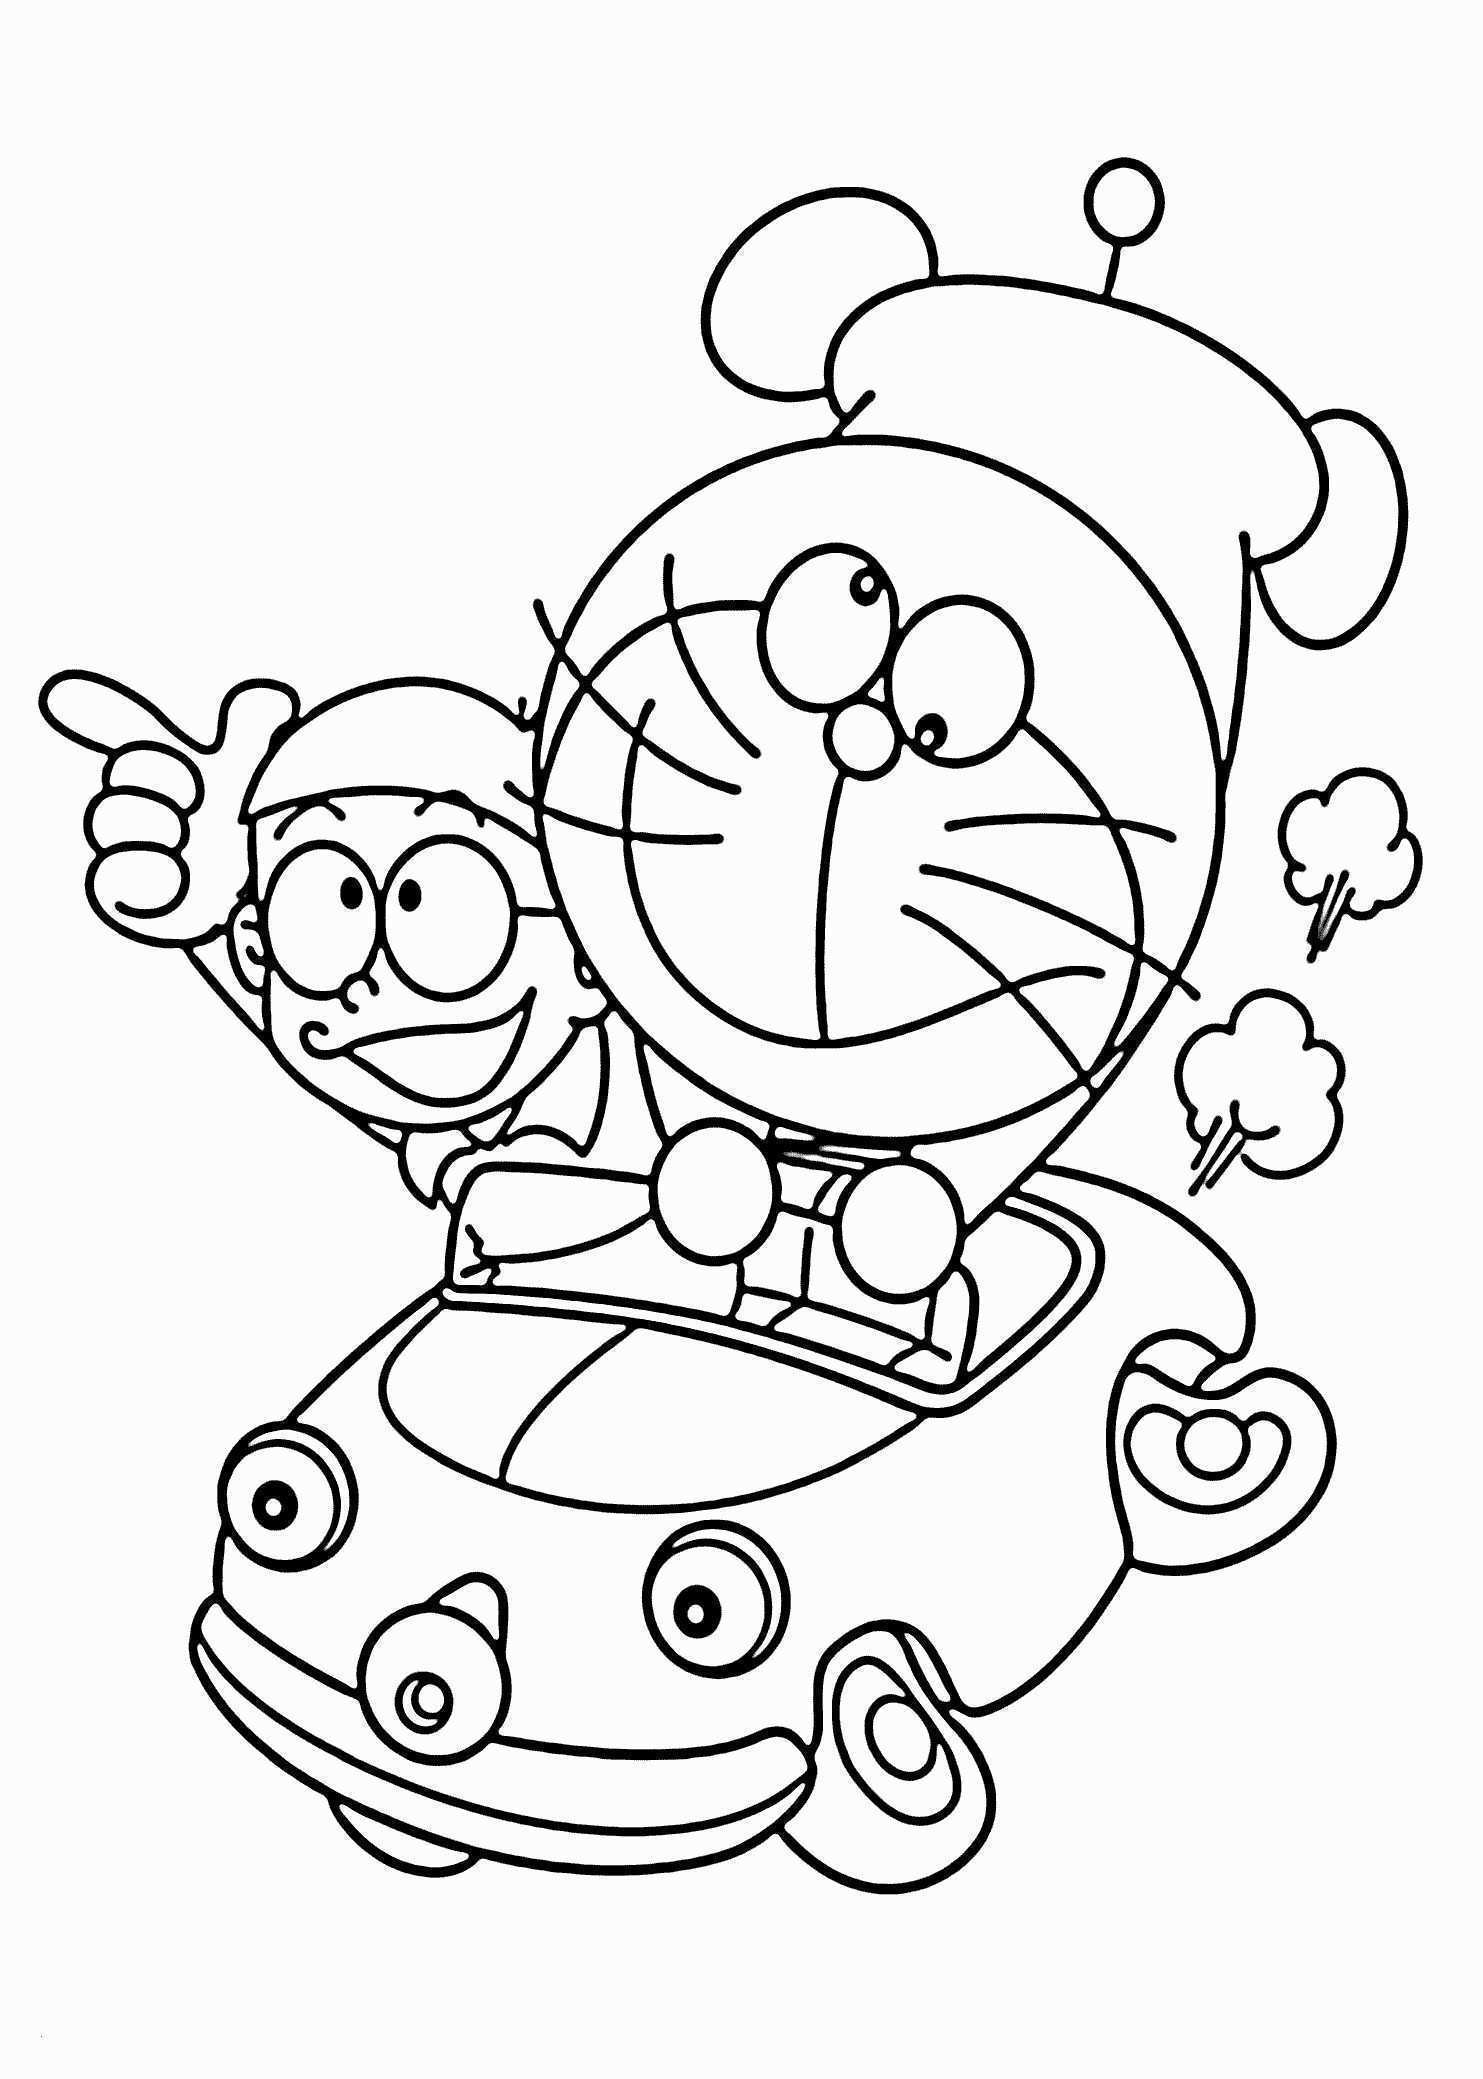 16 Awesome Cool Coloring Pages to Print